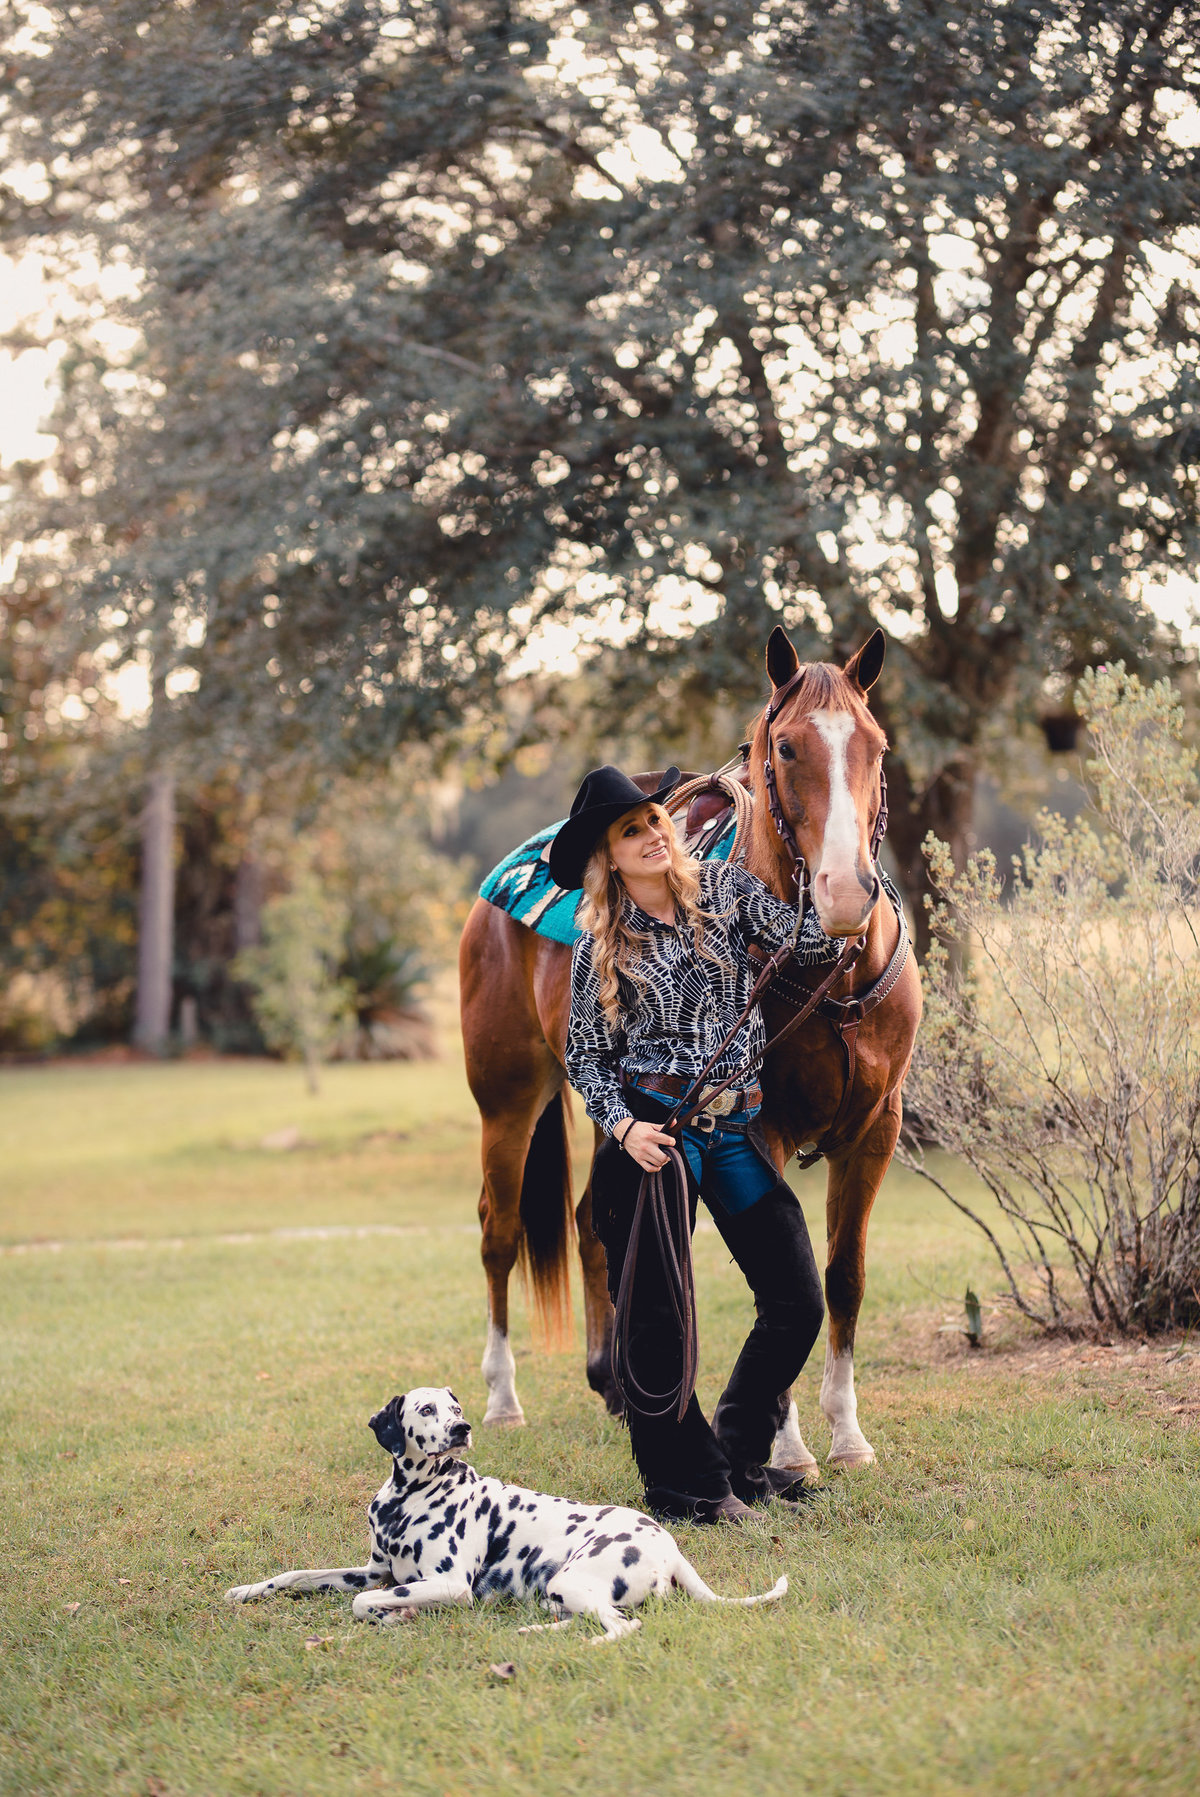 Girl with her horse and dog in ranch riding attire in Ocala, FL